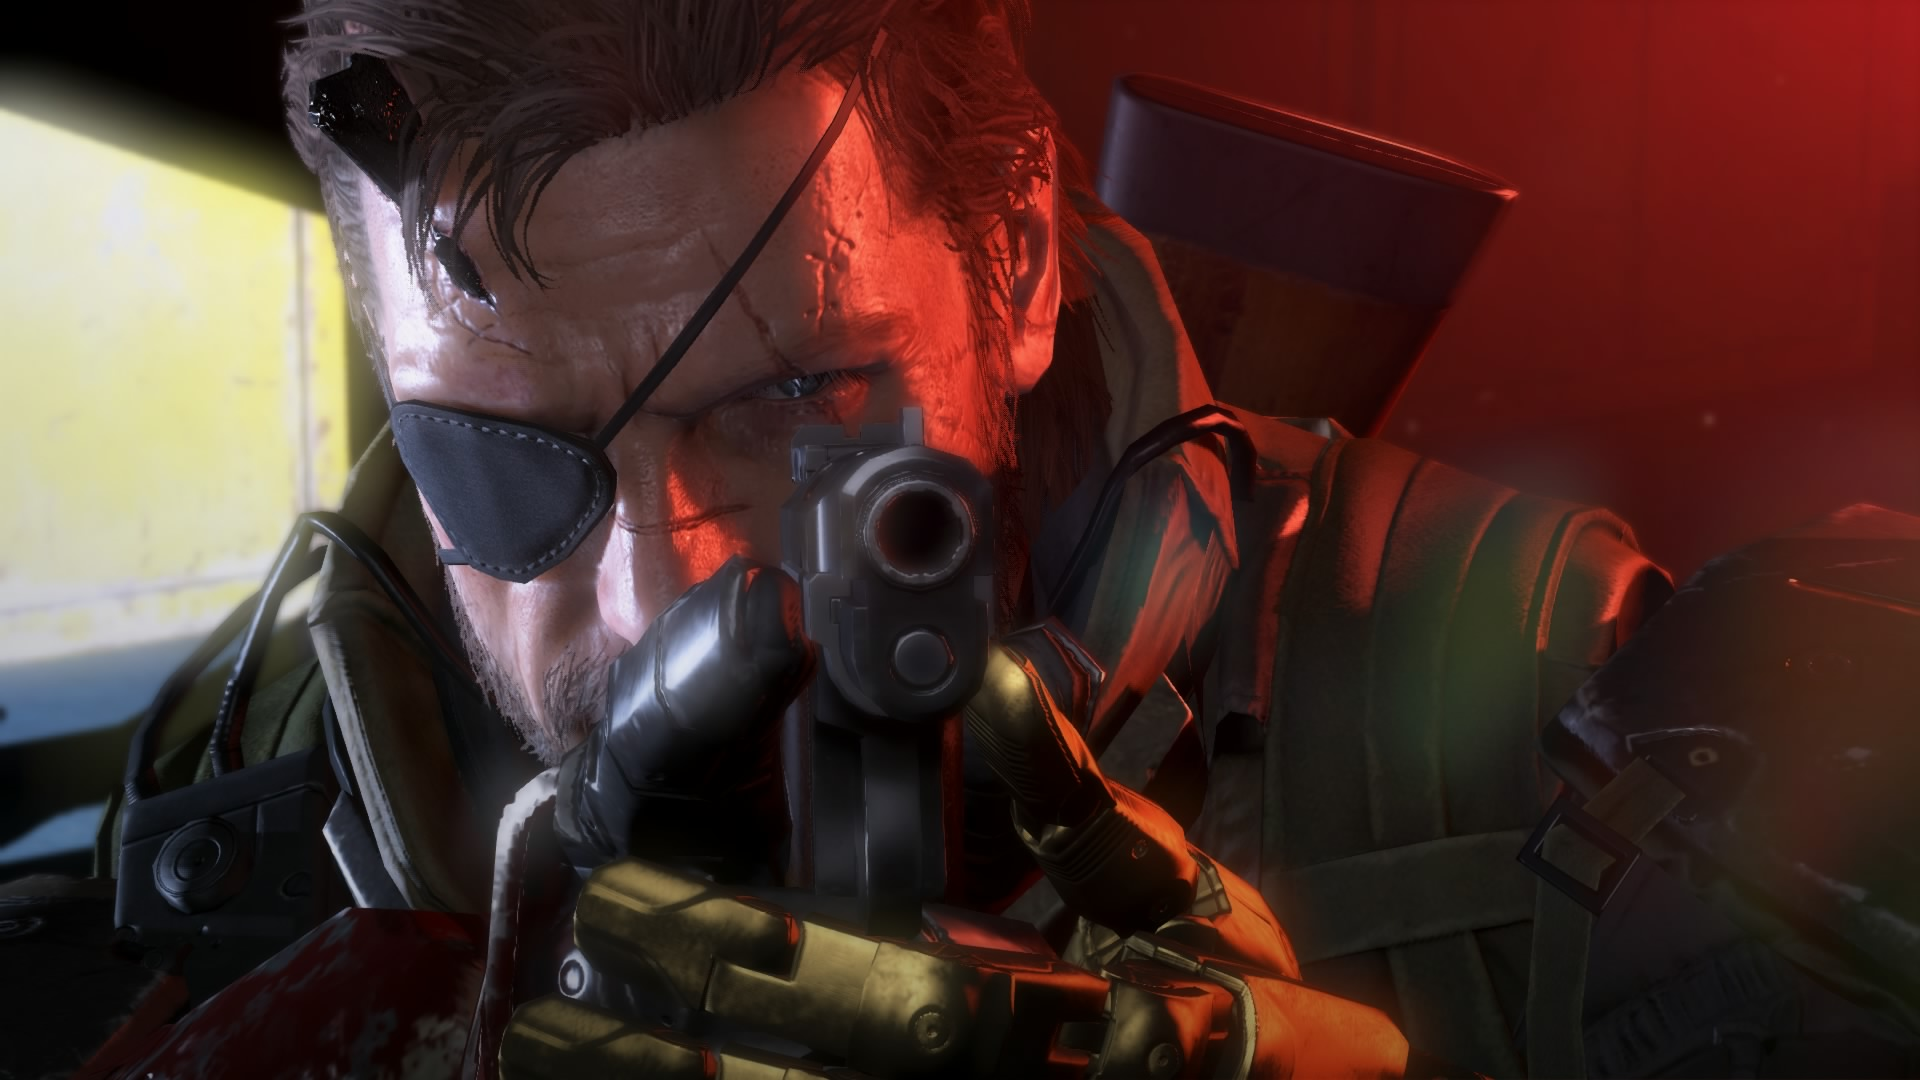 Metal Gear Solid 5 The Phantom Pain Episode 12 Hellbound Vg247